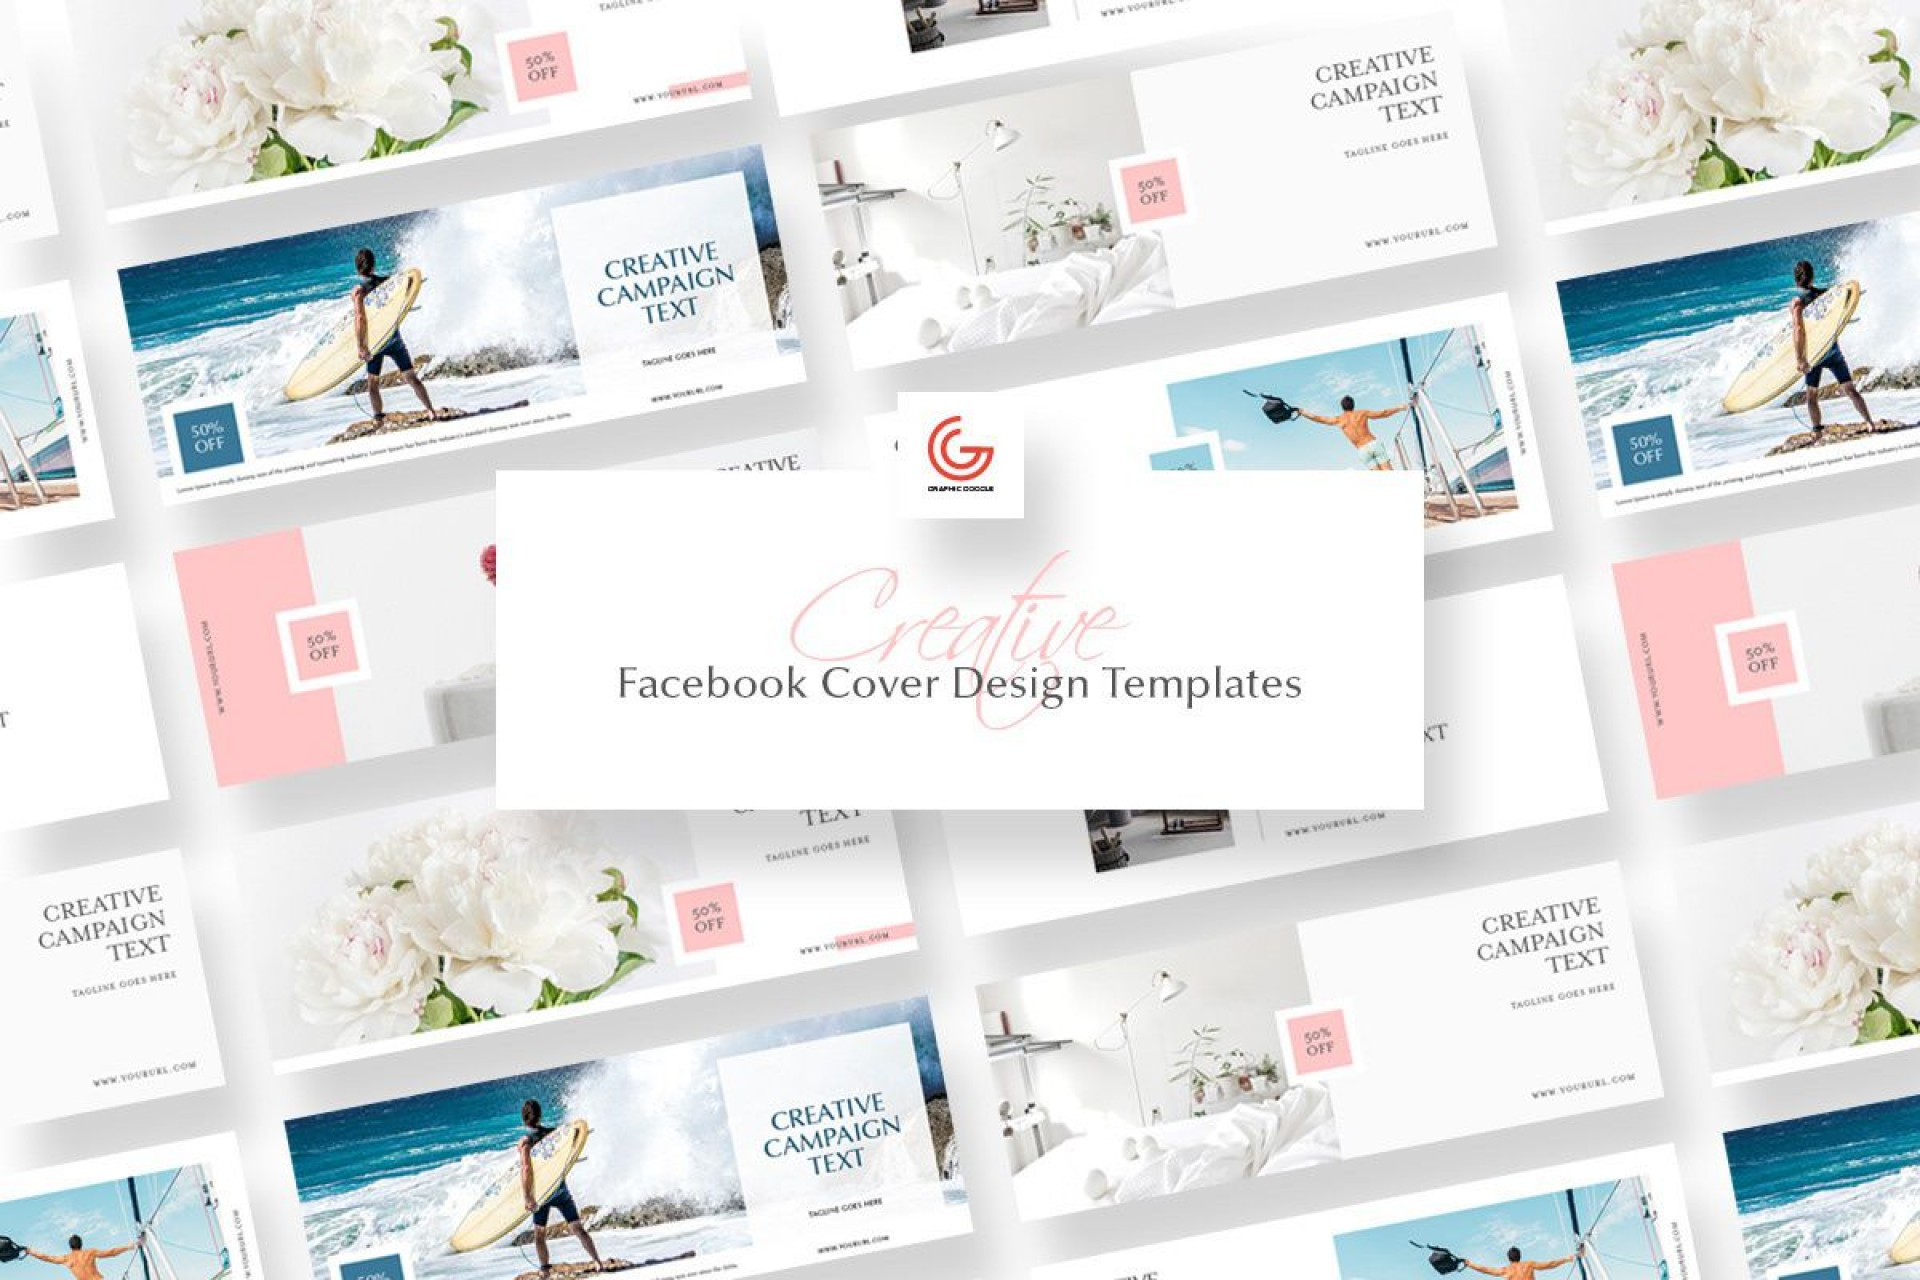 002 Simple Free Facebook Cover Template High Definition  Templates Photoshop1920